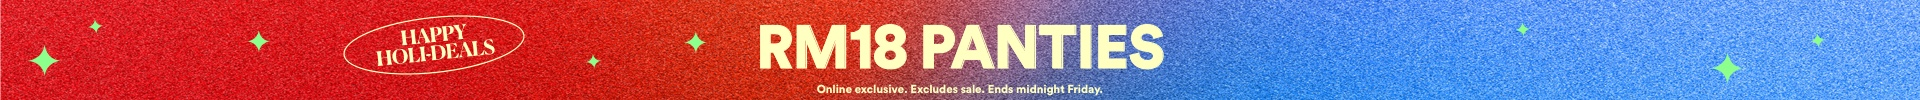 RM18 Panties. Online exclusive. Excludes sale. Ends midnight Friday. | Click to Shop.